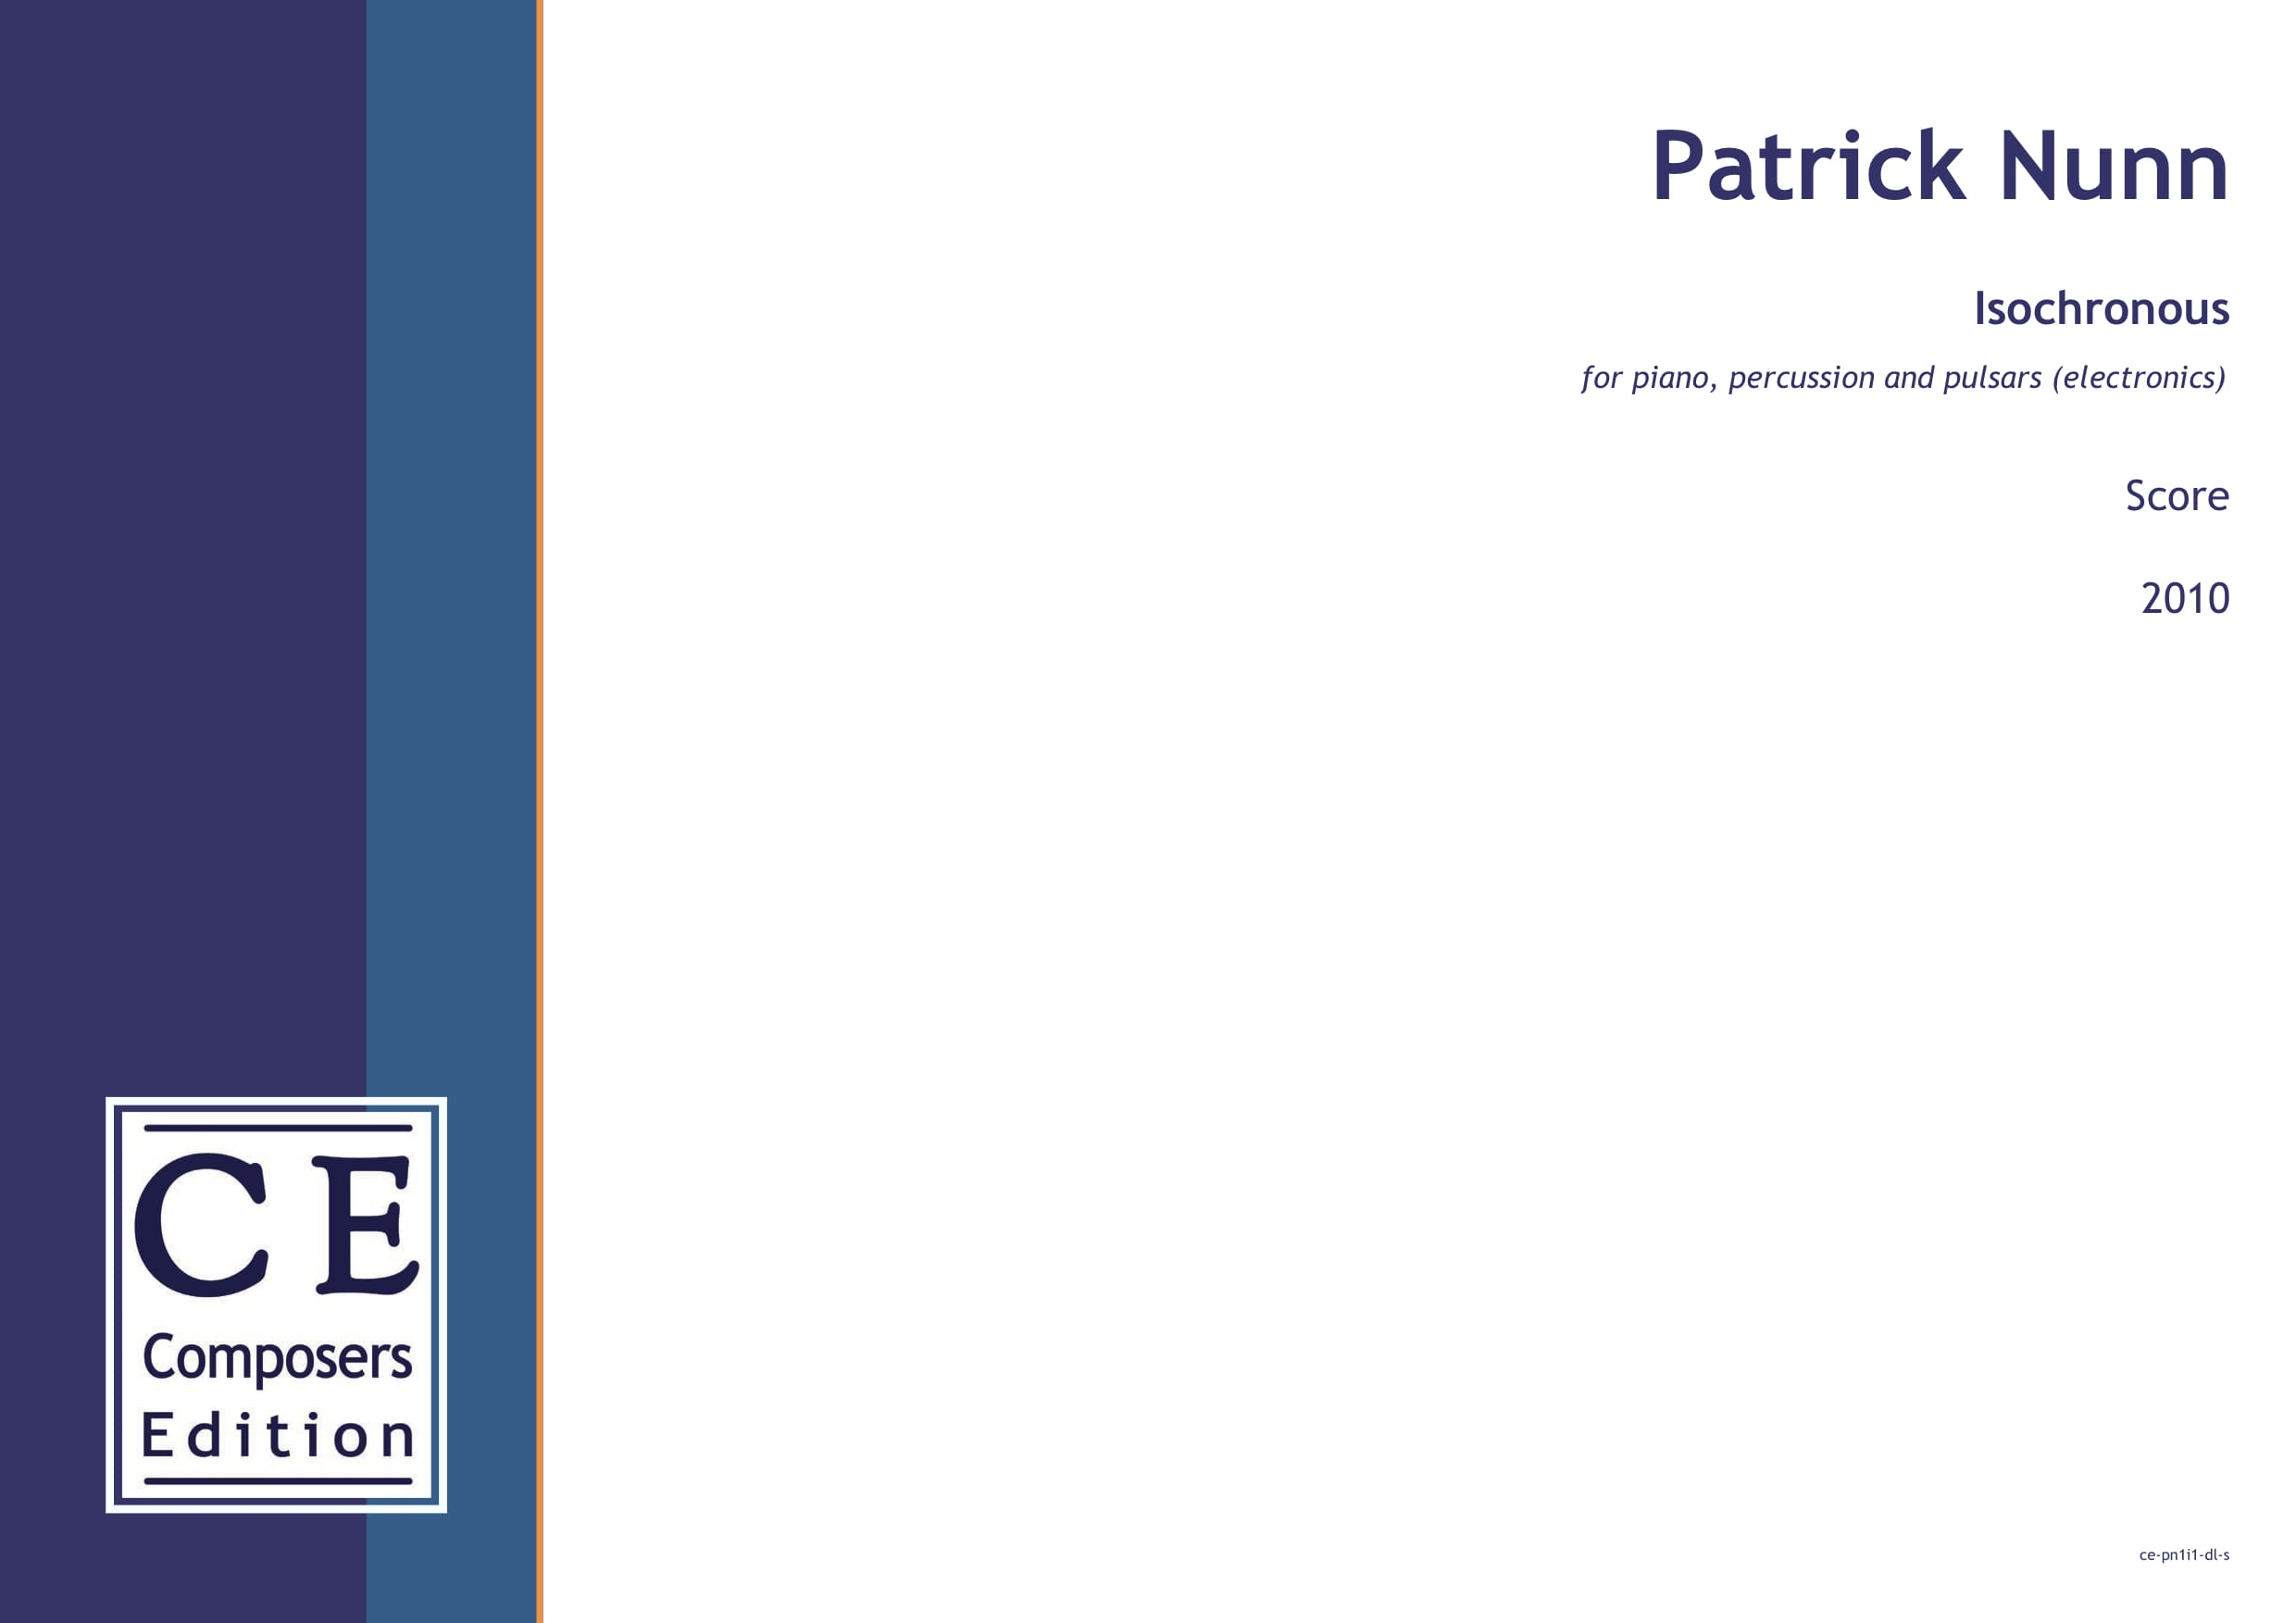 Patrick Nunn: Isochronous for piano, percussion and pulsars (electronics)